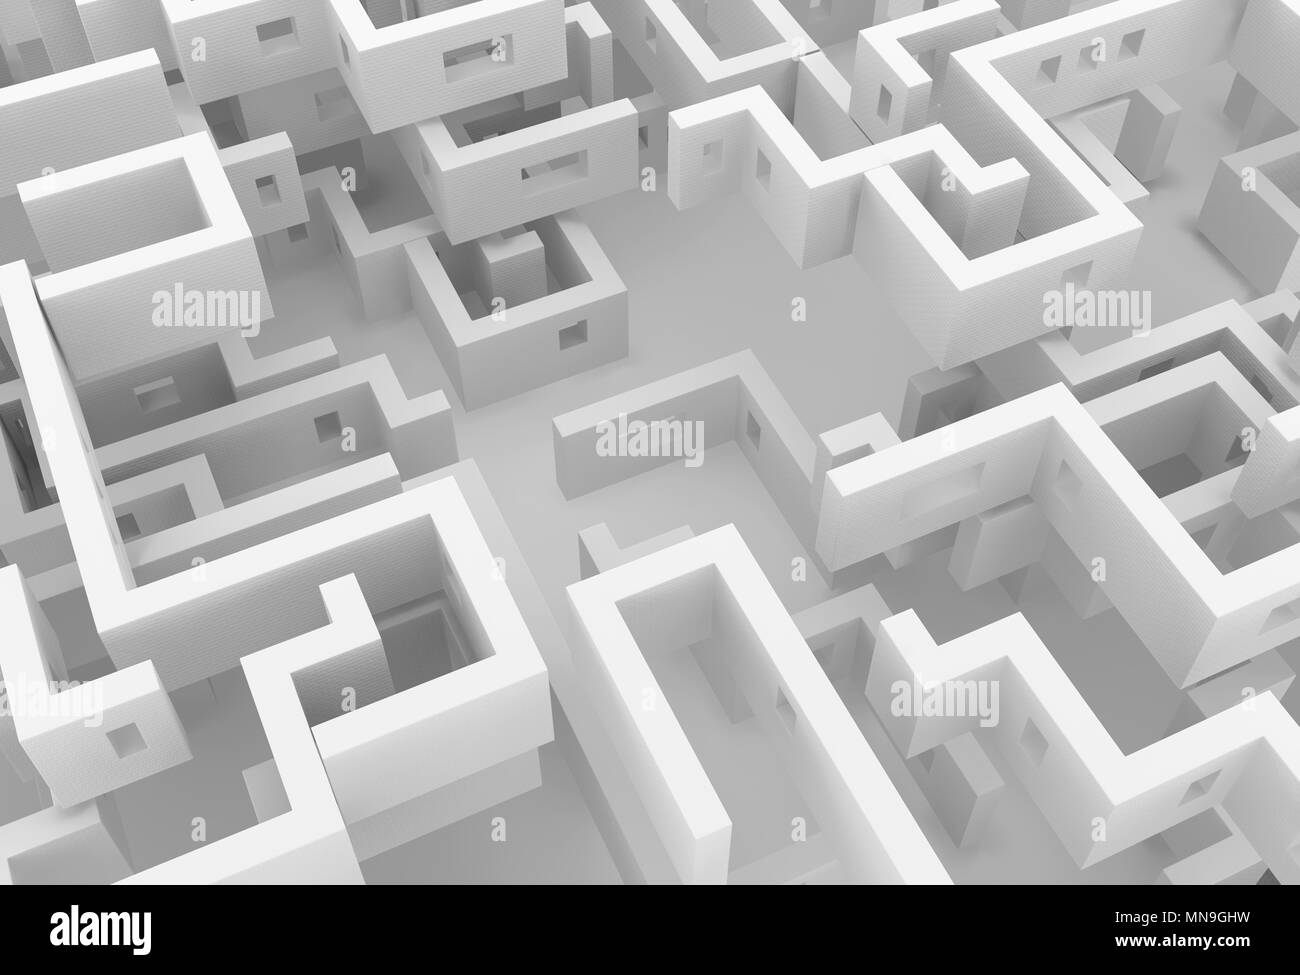 White wall labyrinth maze empty space abstract, 3d illustration, horizontal - Stock Image